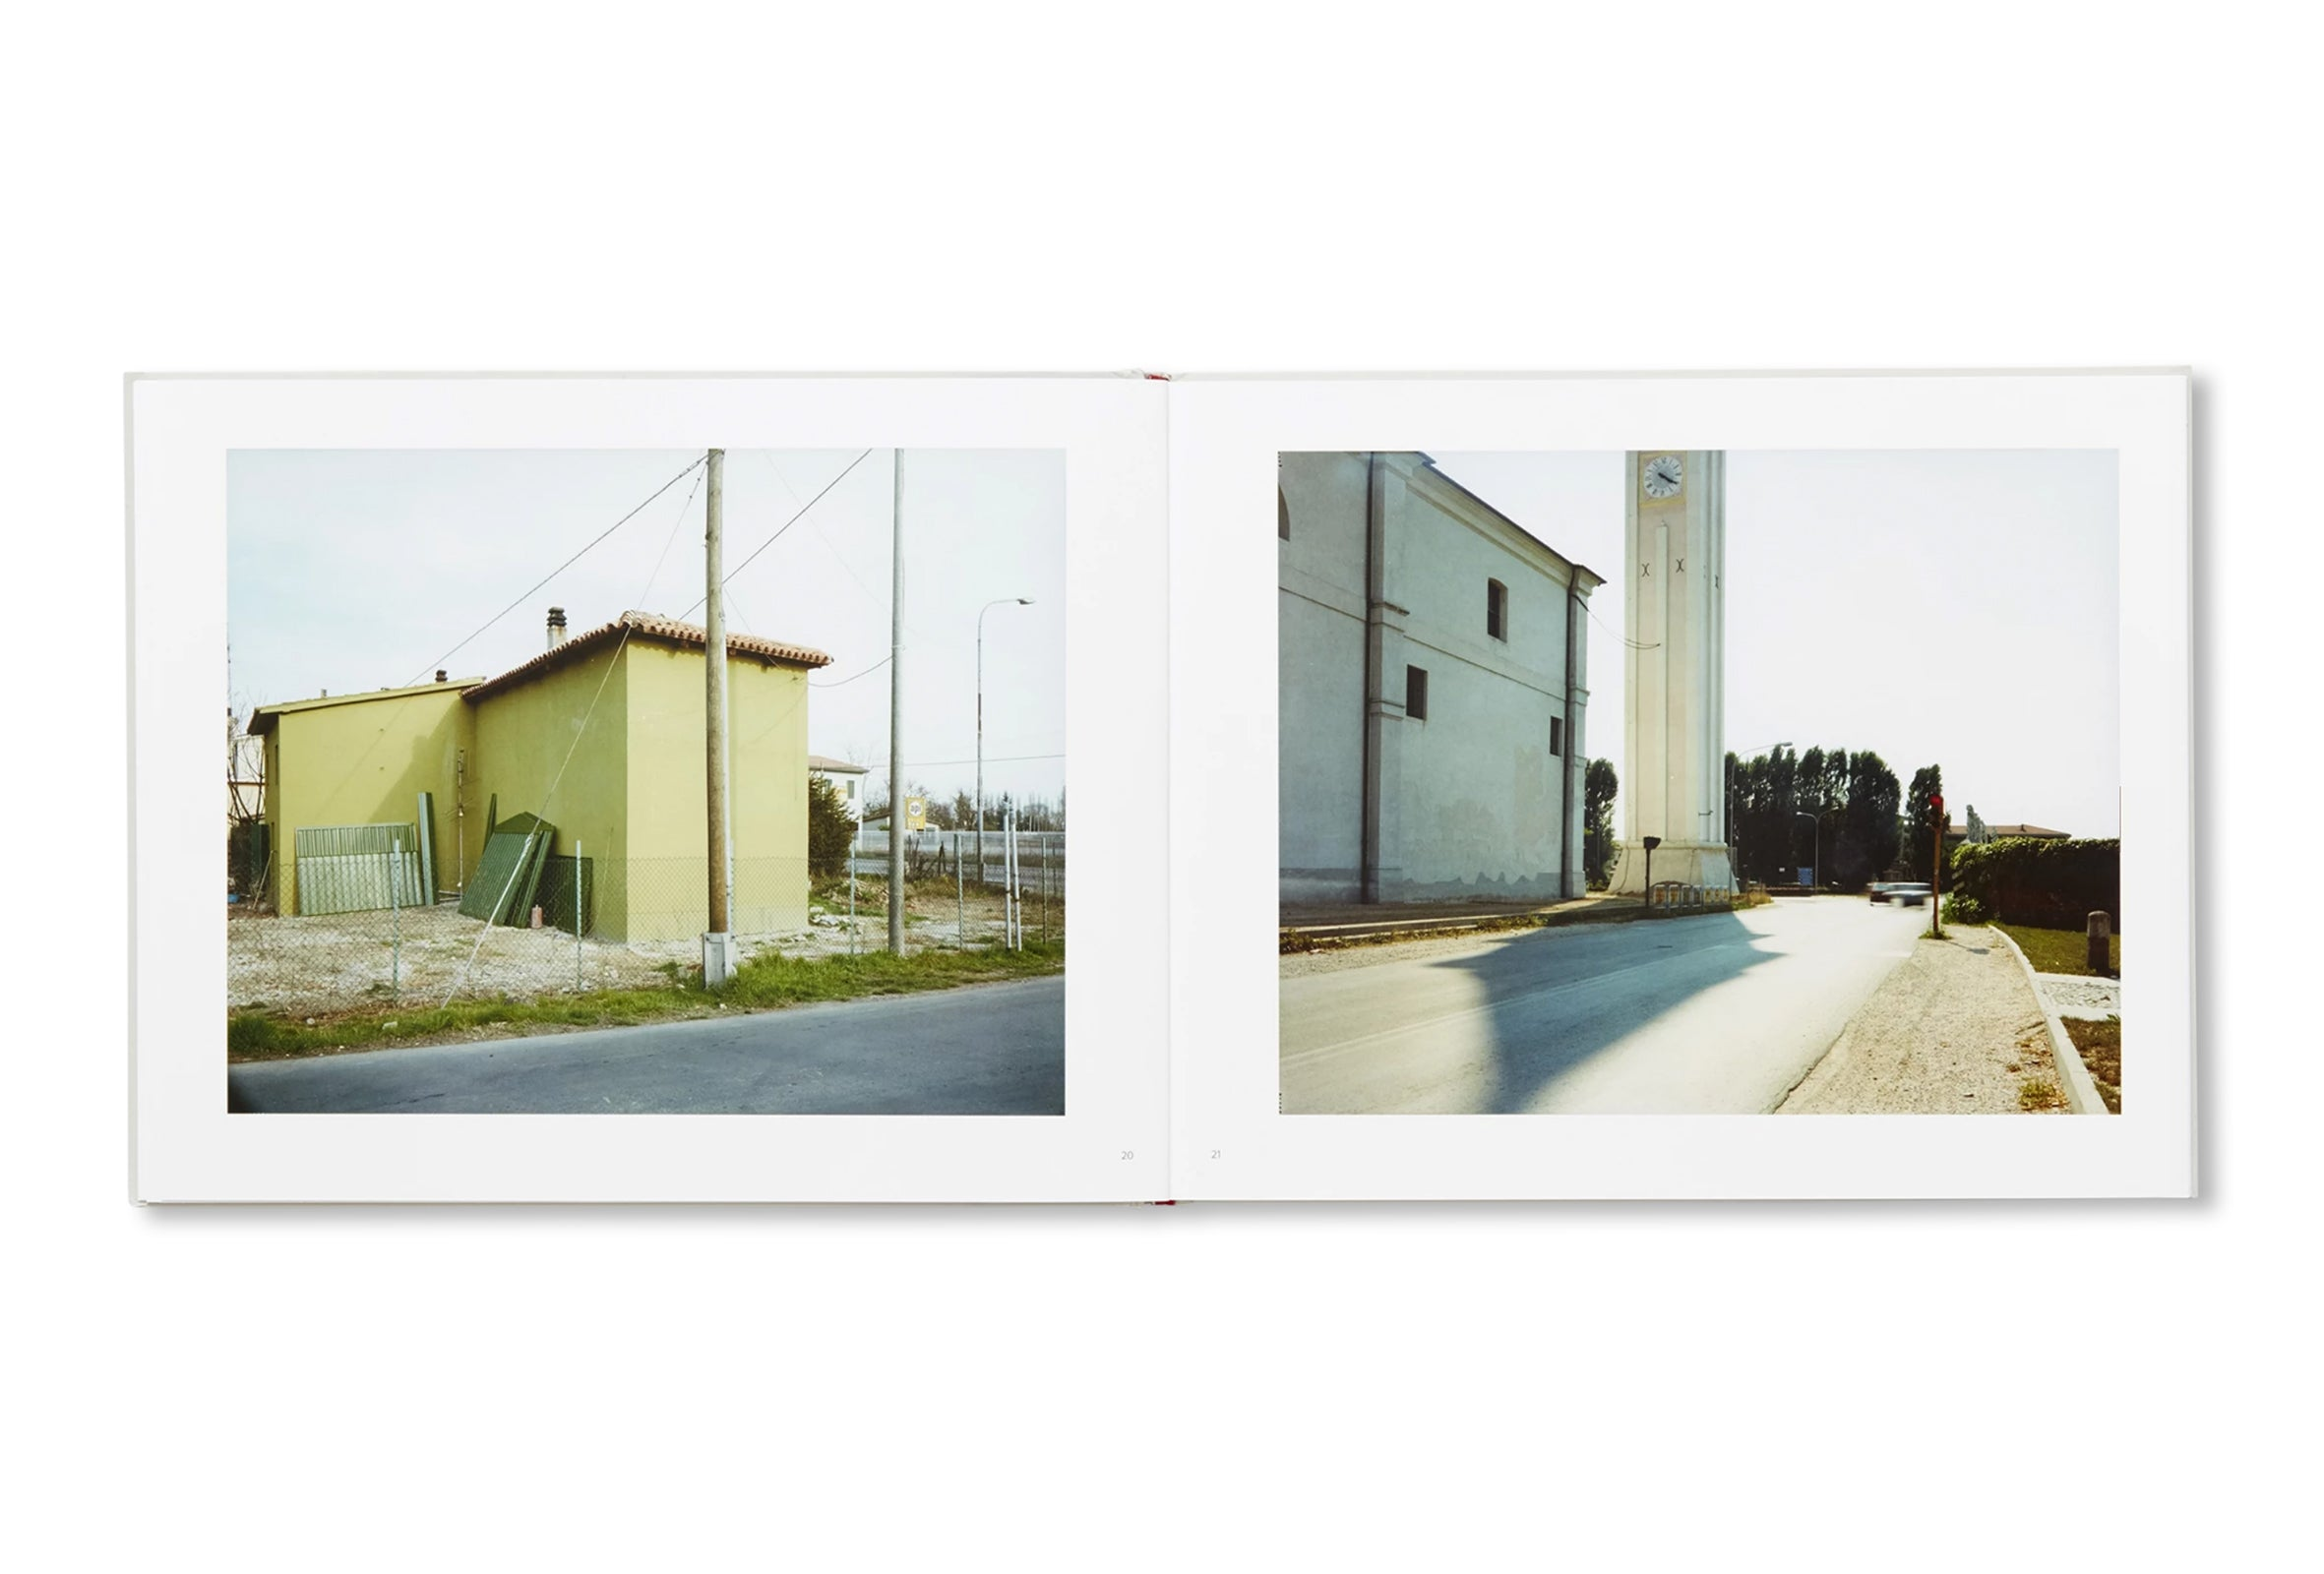 IN VENETO, 1984-89 by Guido Guidi [SPECIAL EDITION]